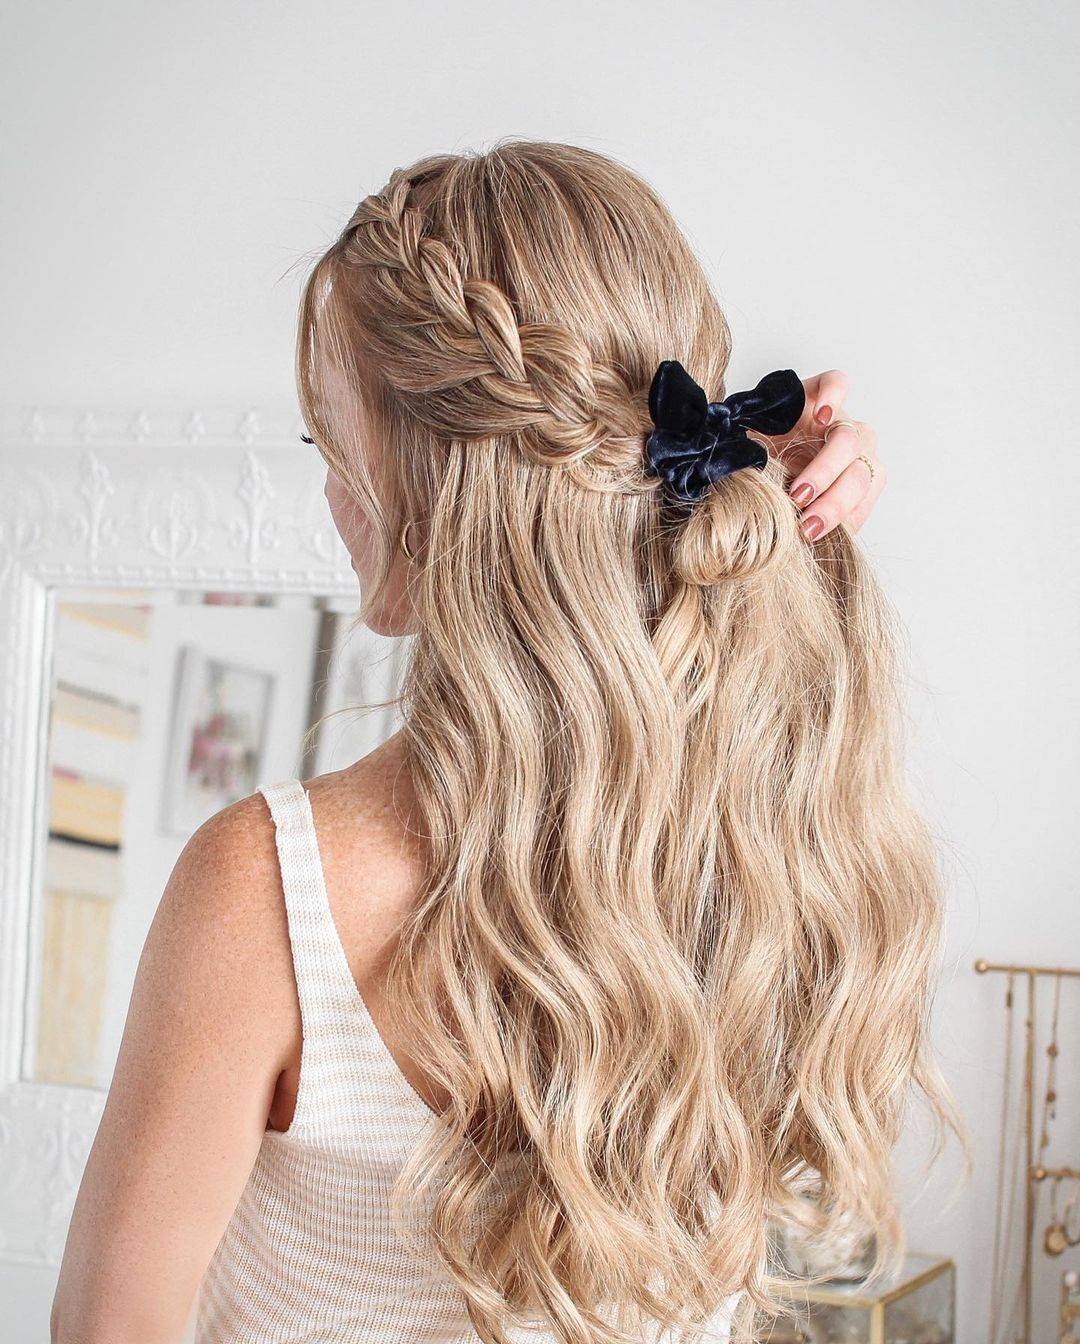 hairstyles-new years-semi-collected